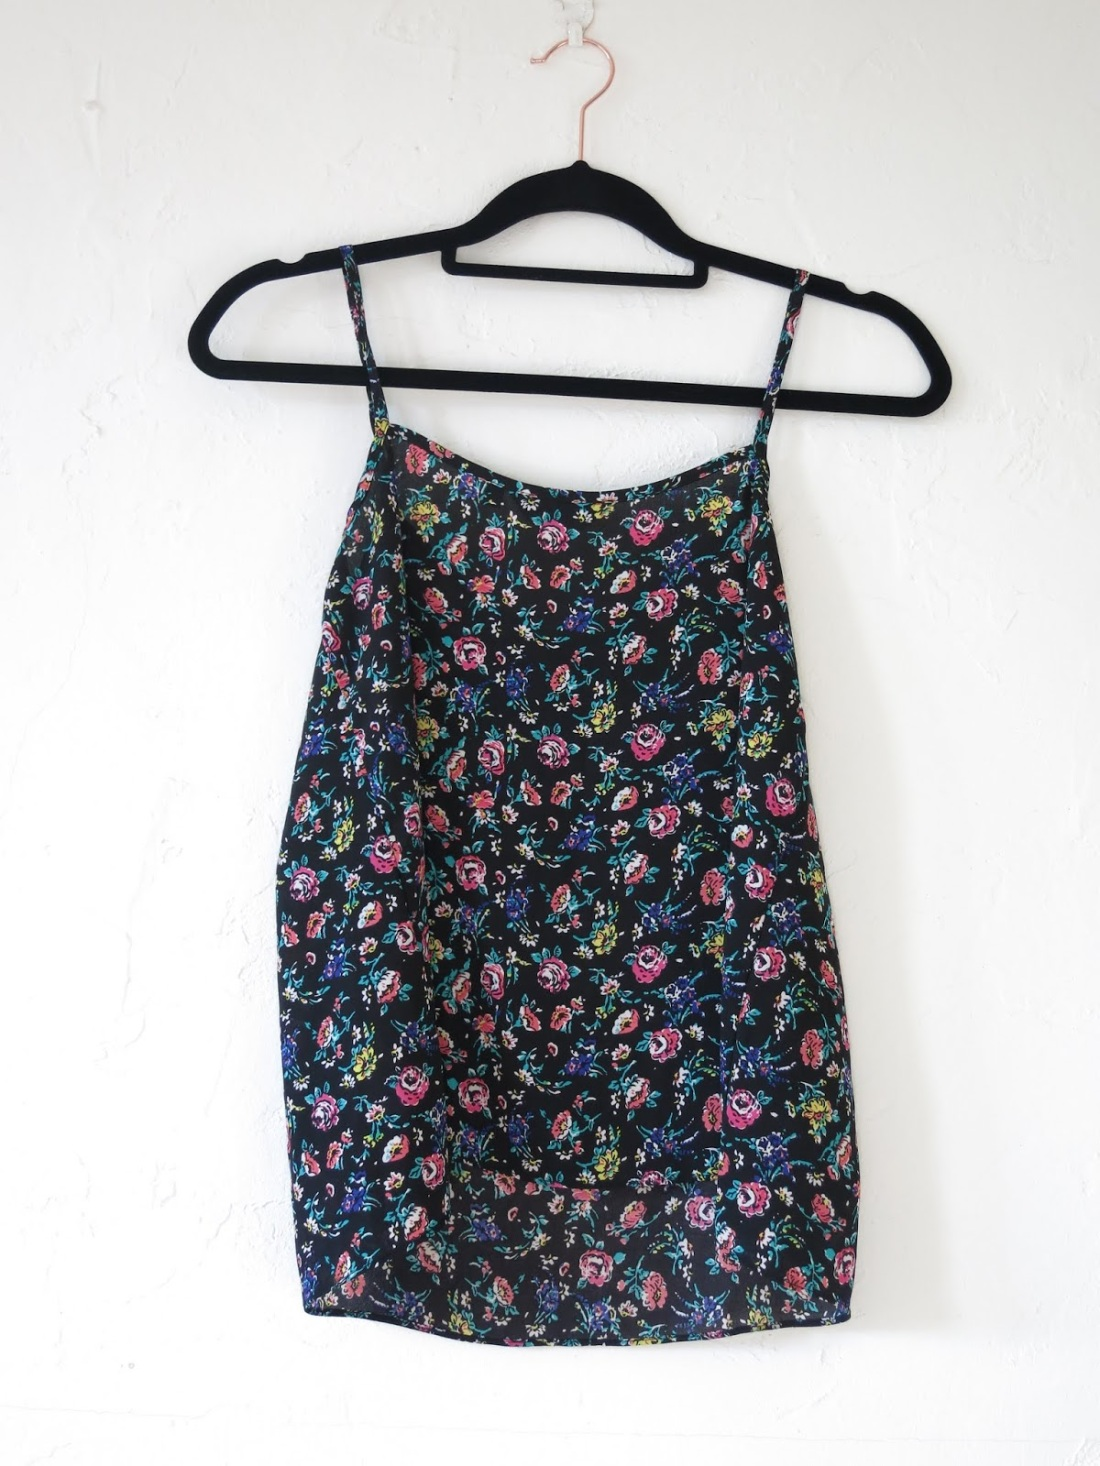 black, floral-printed camisole